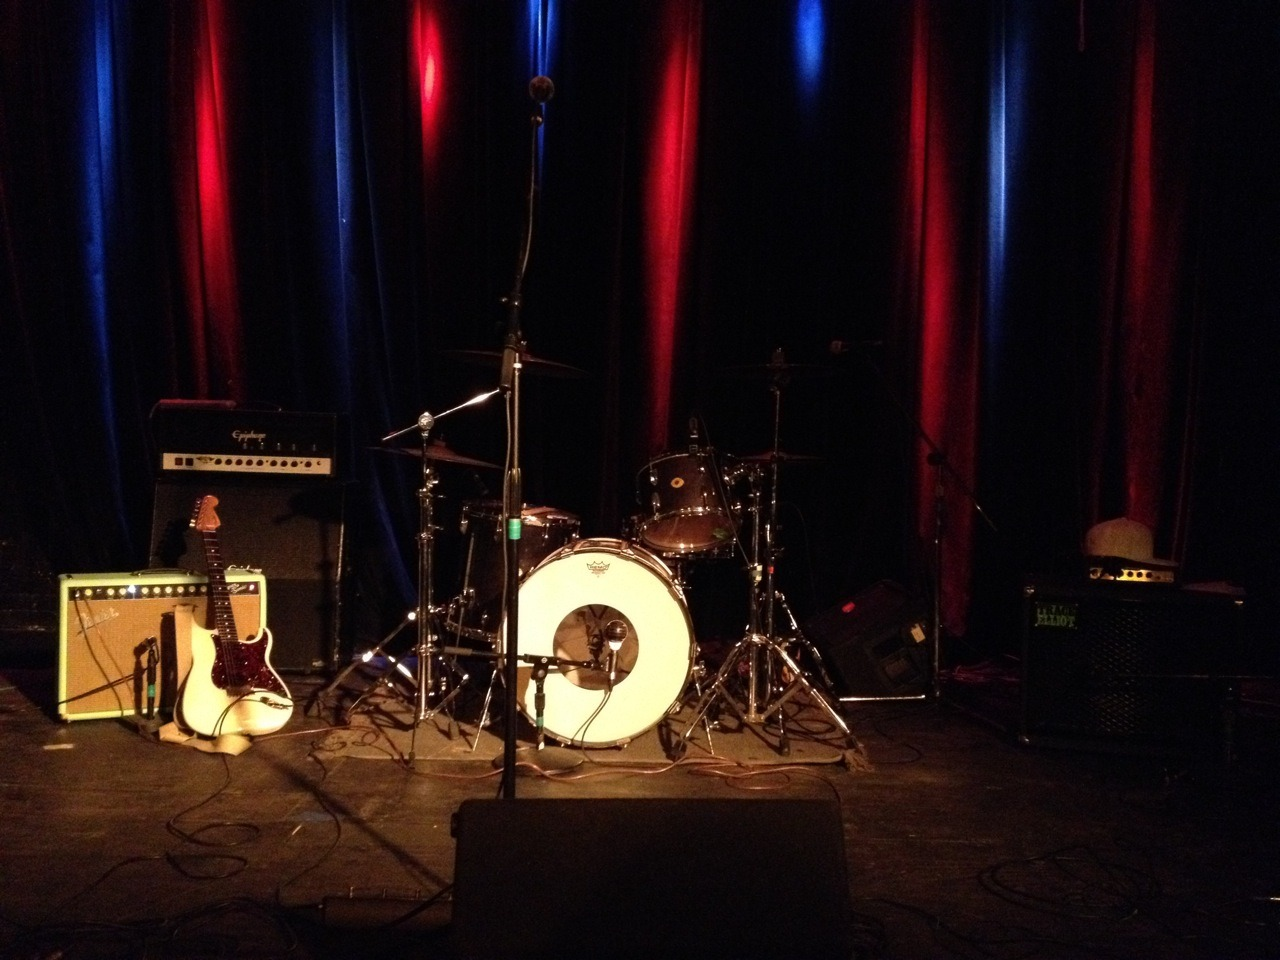 the set stage for Public Assembly show in Brooklyn. -np